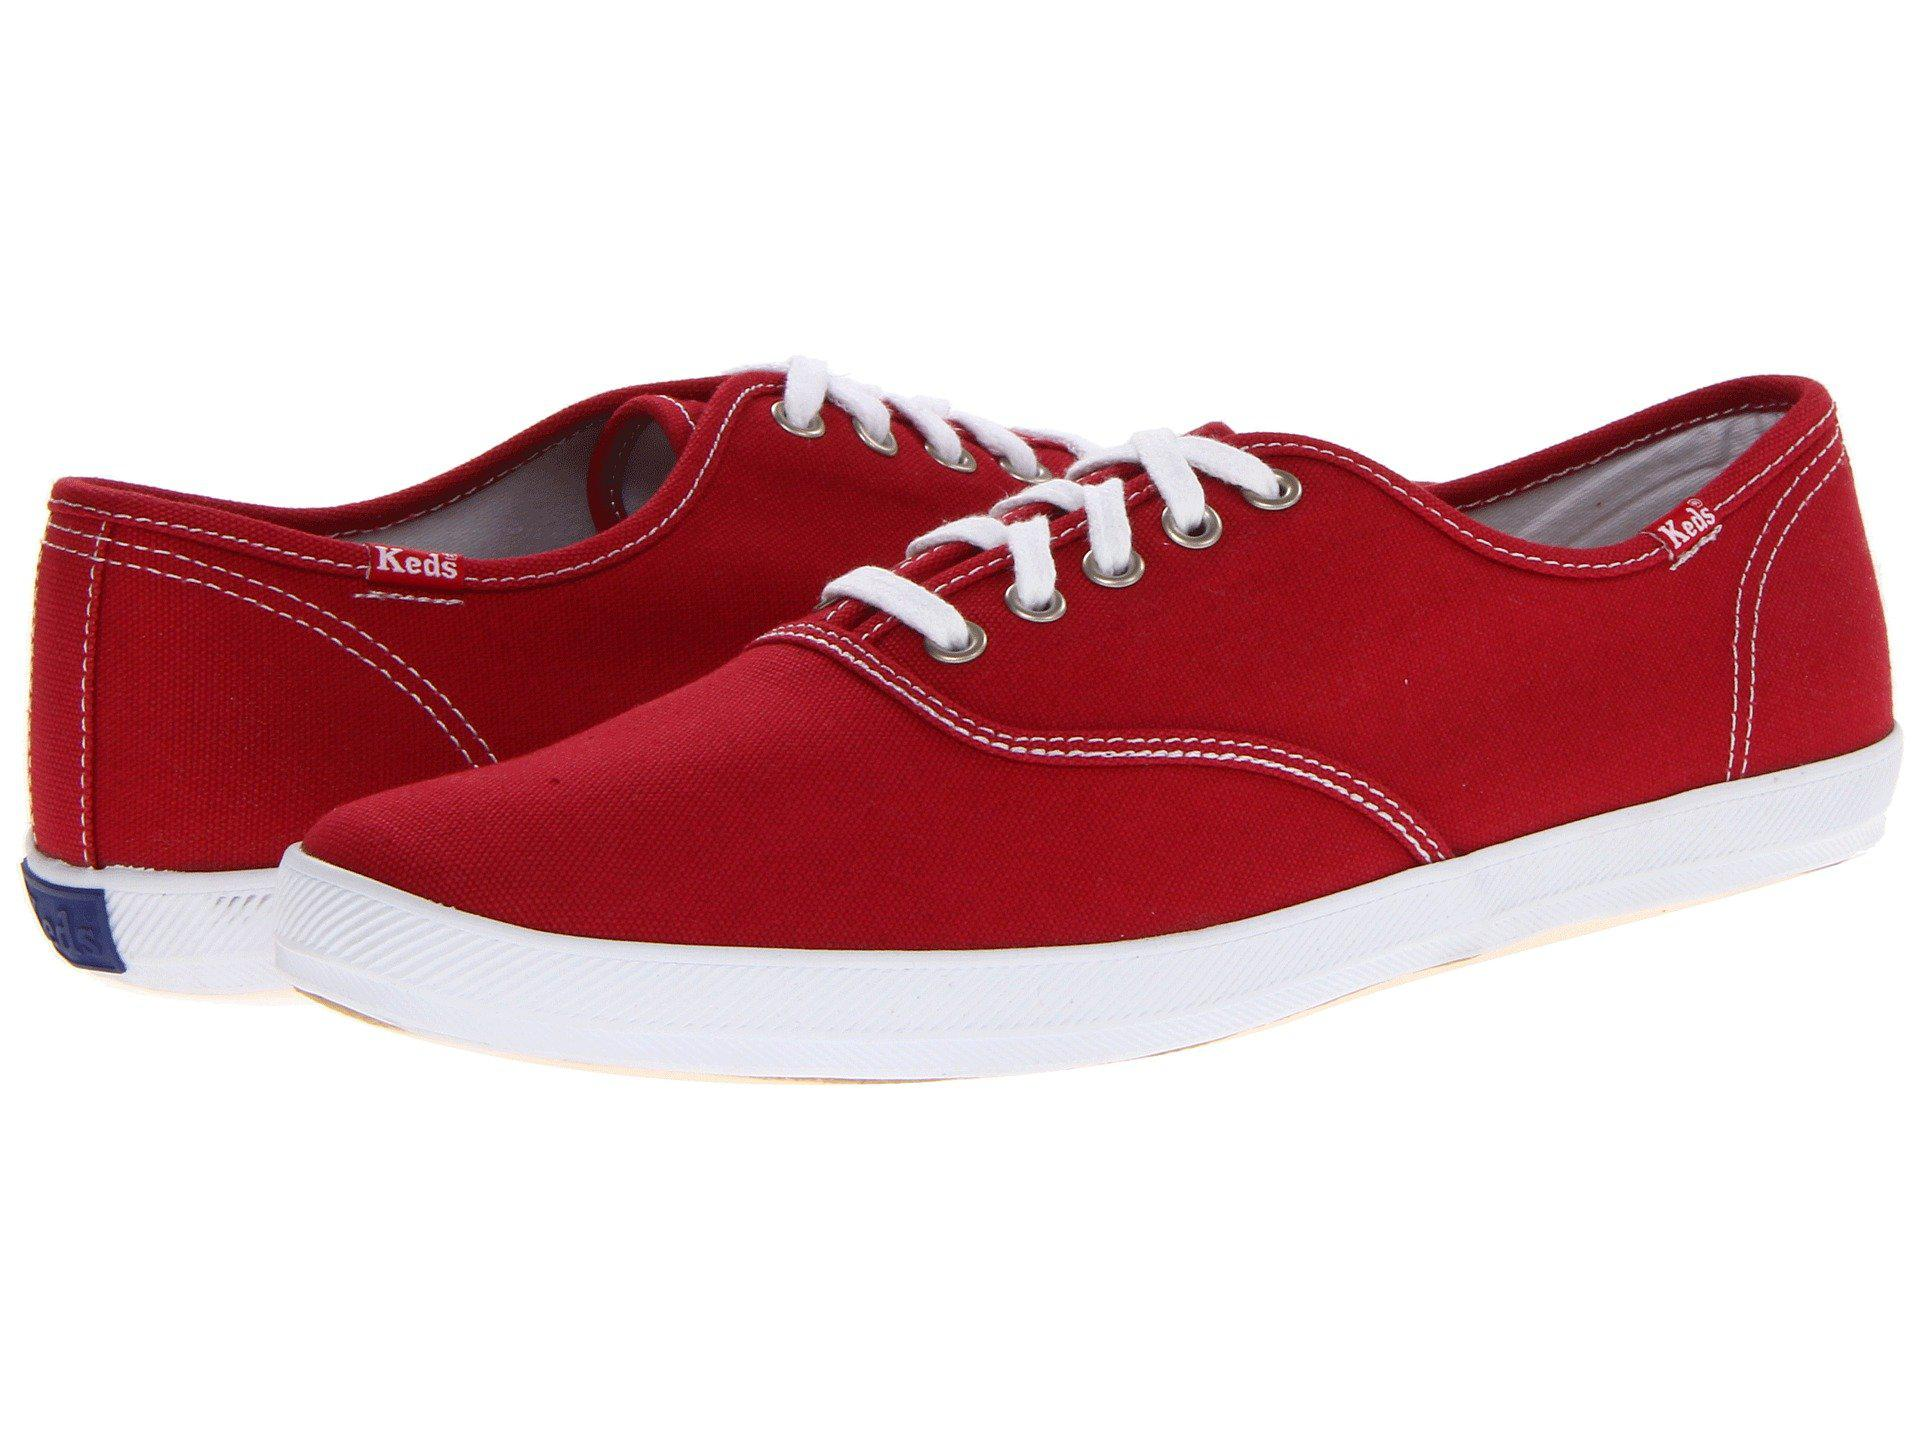 da1c8fa60e6 Lyst - Keds Champion Cvo in Red for Men - Save 13%